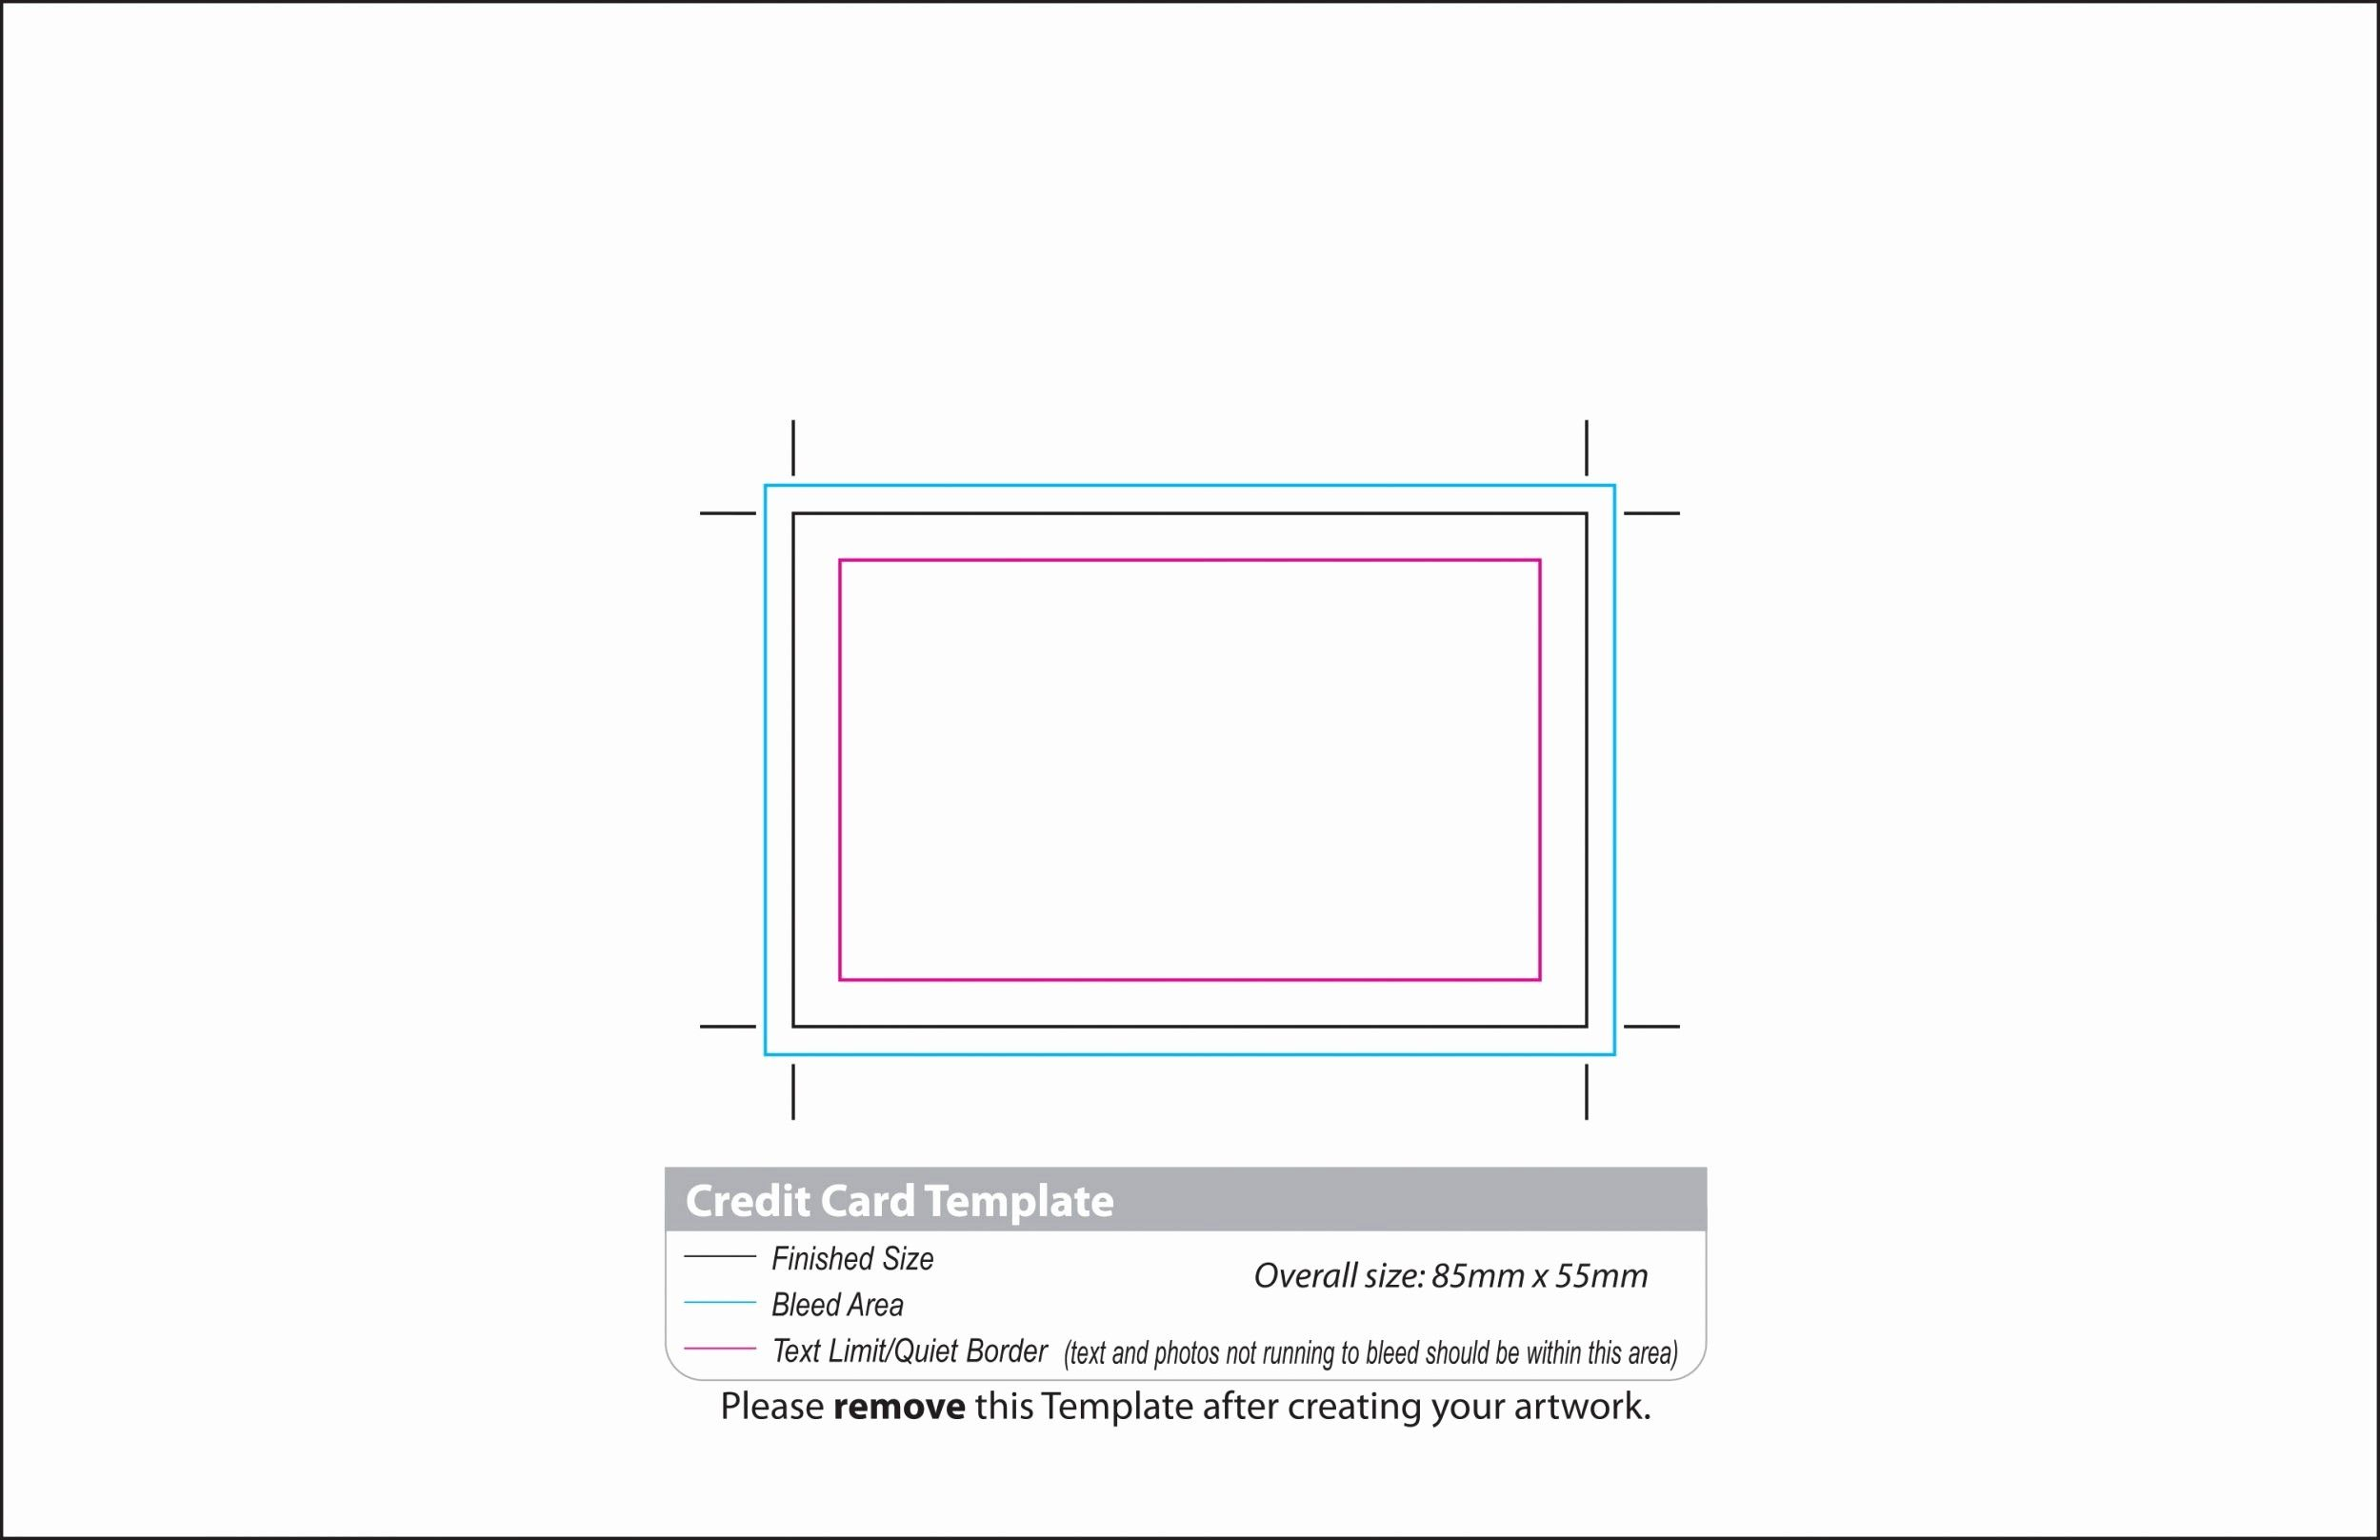 Blank Business Card Template Free Beautiful Business Card Border Template Inspirational Awesom Free Business Card Templates Business Card Size Credit Card Slip